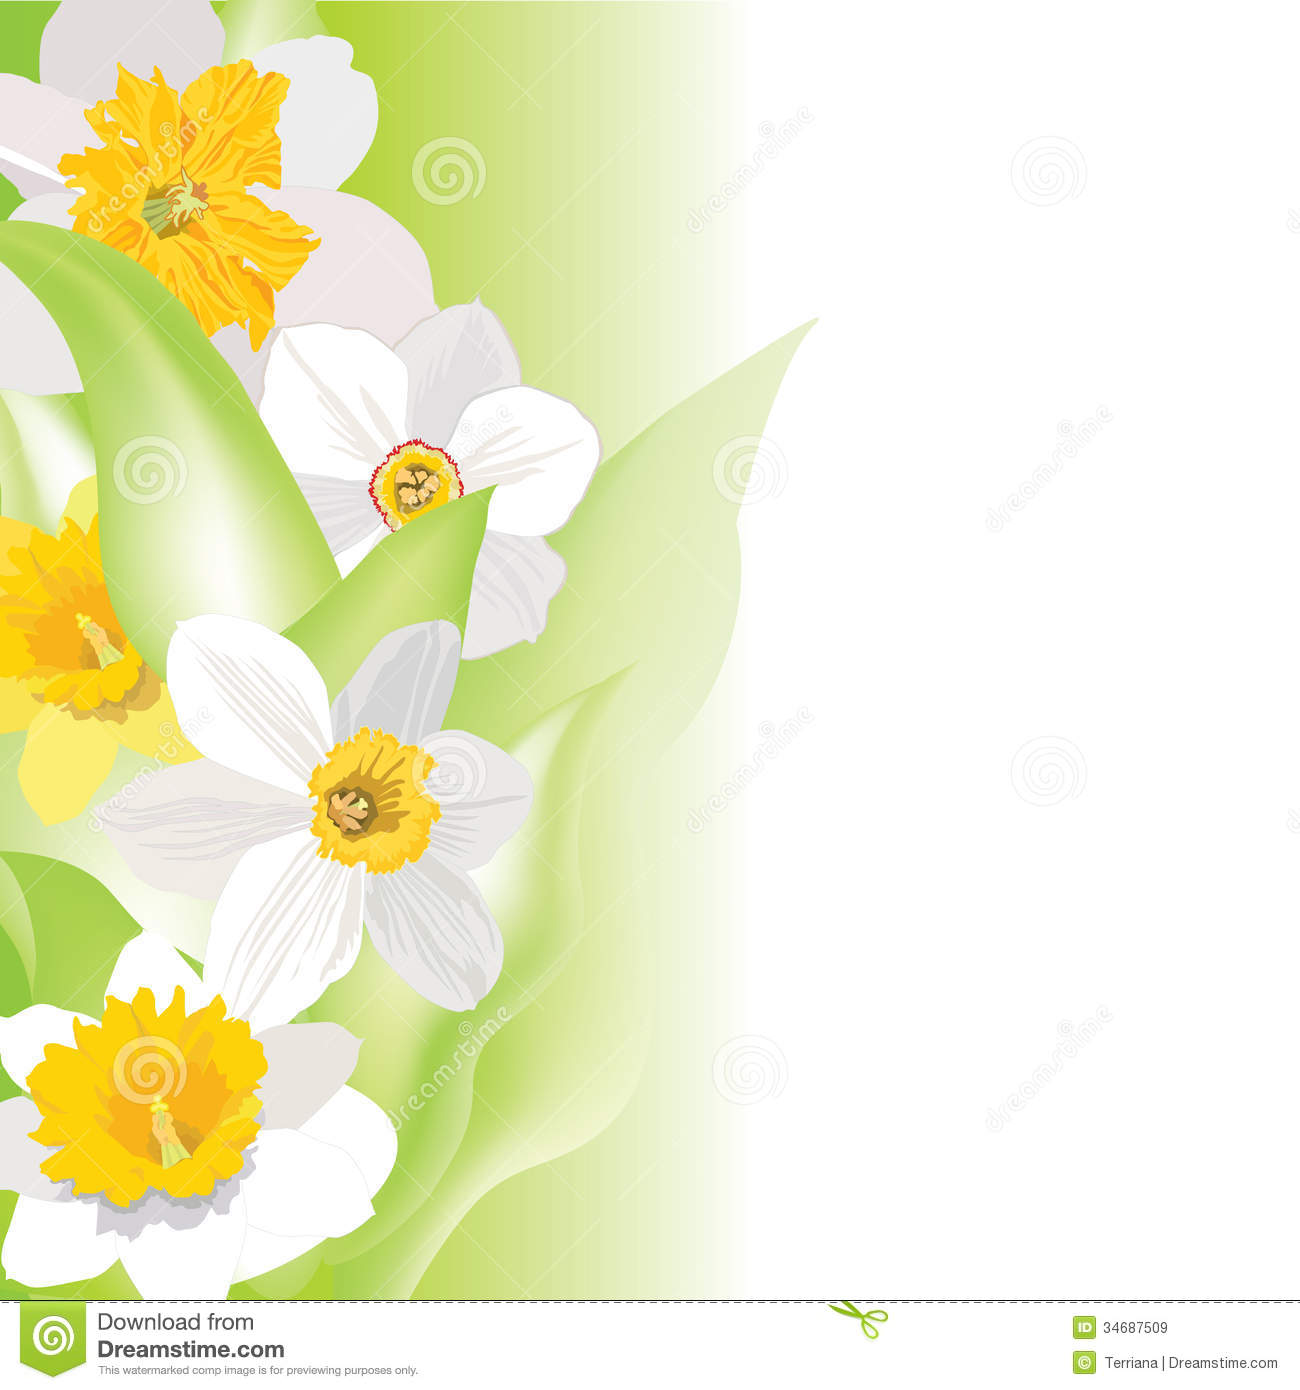 daffodil border stock illustrations u2013 374 daffodil border stock